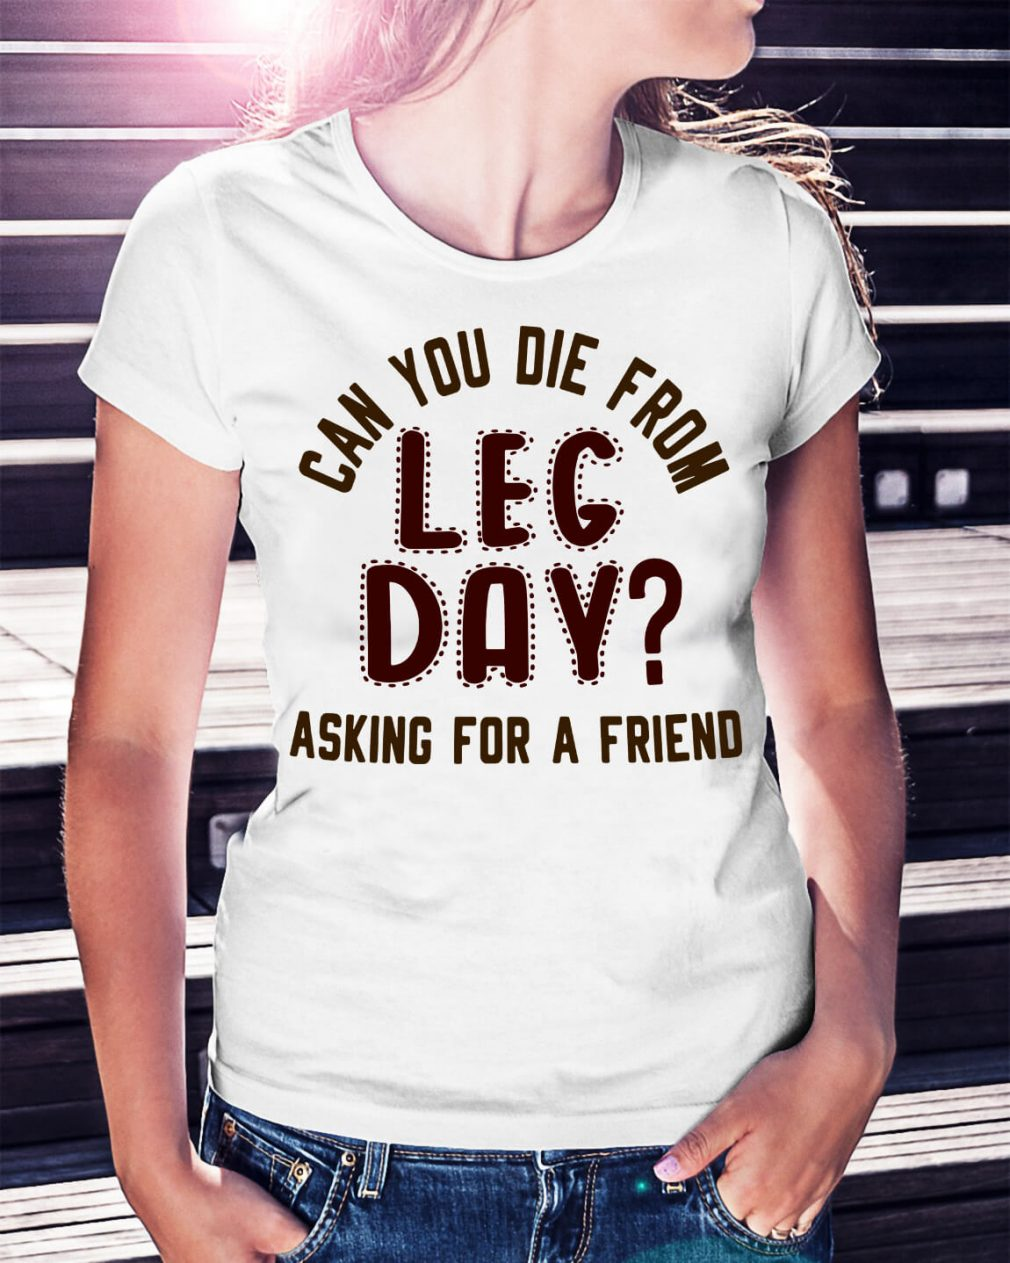 Can you die from leg day asking for a friend shirt